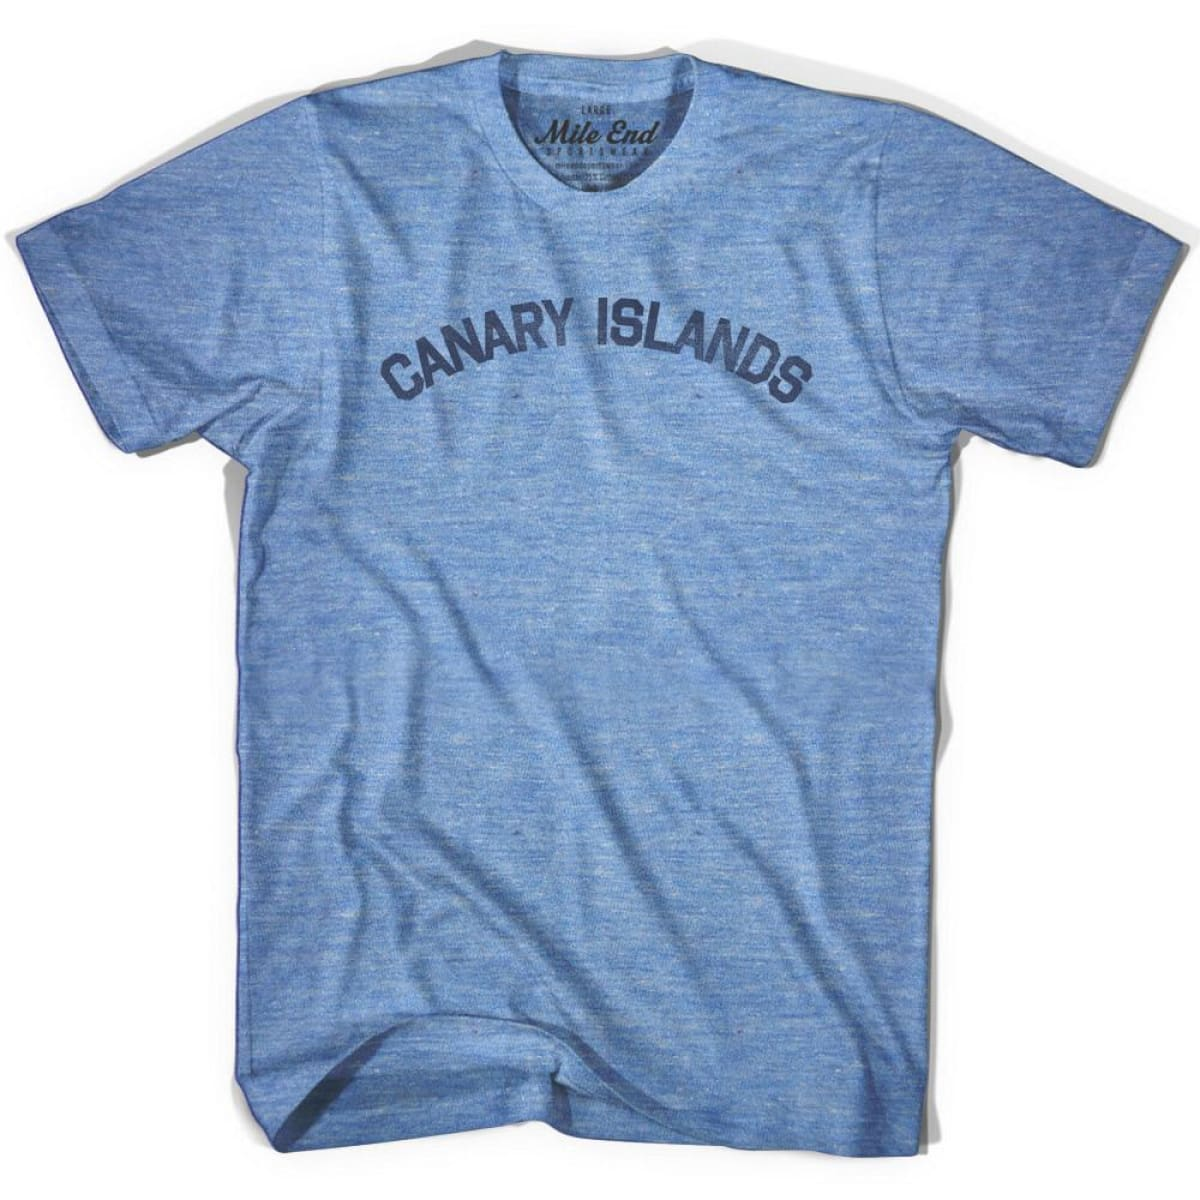 Canary Islands City Vintage T-shirt - Athletic Blue / Adult X-Small - Mile End City